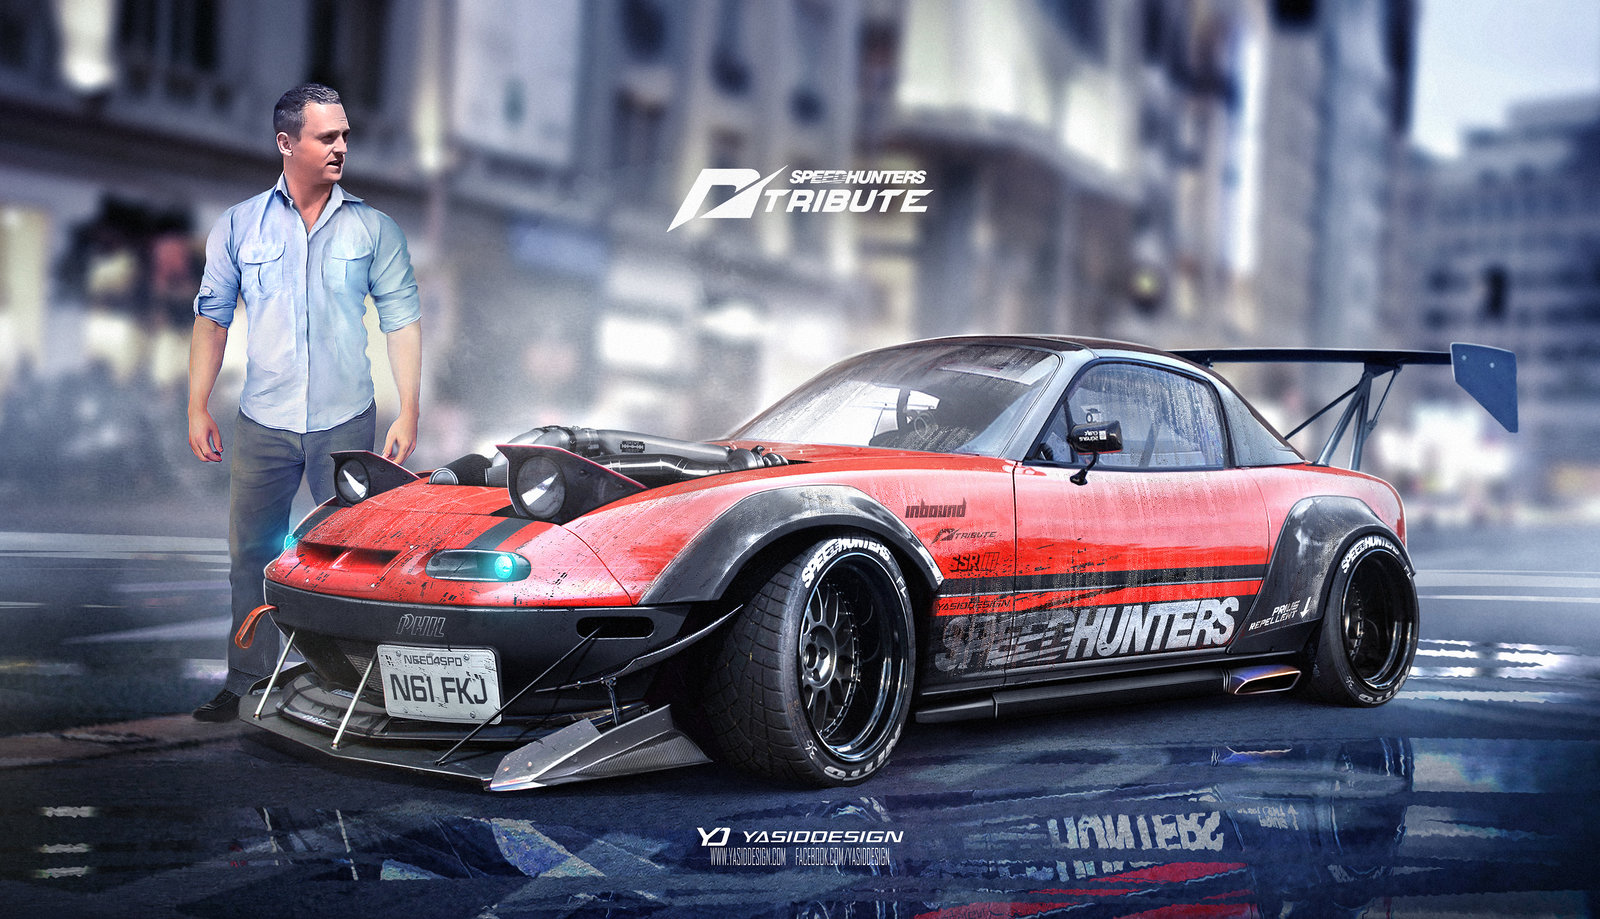 Speedhunters Need for speed tribute Alex and Phil Mazda Mx5